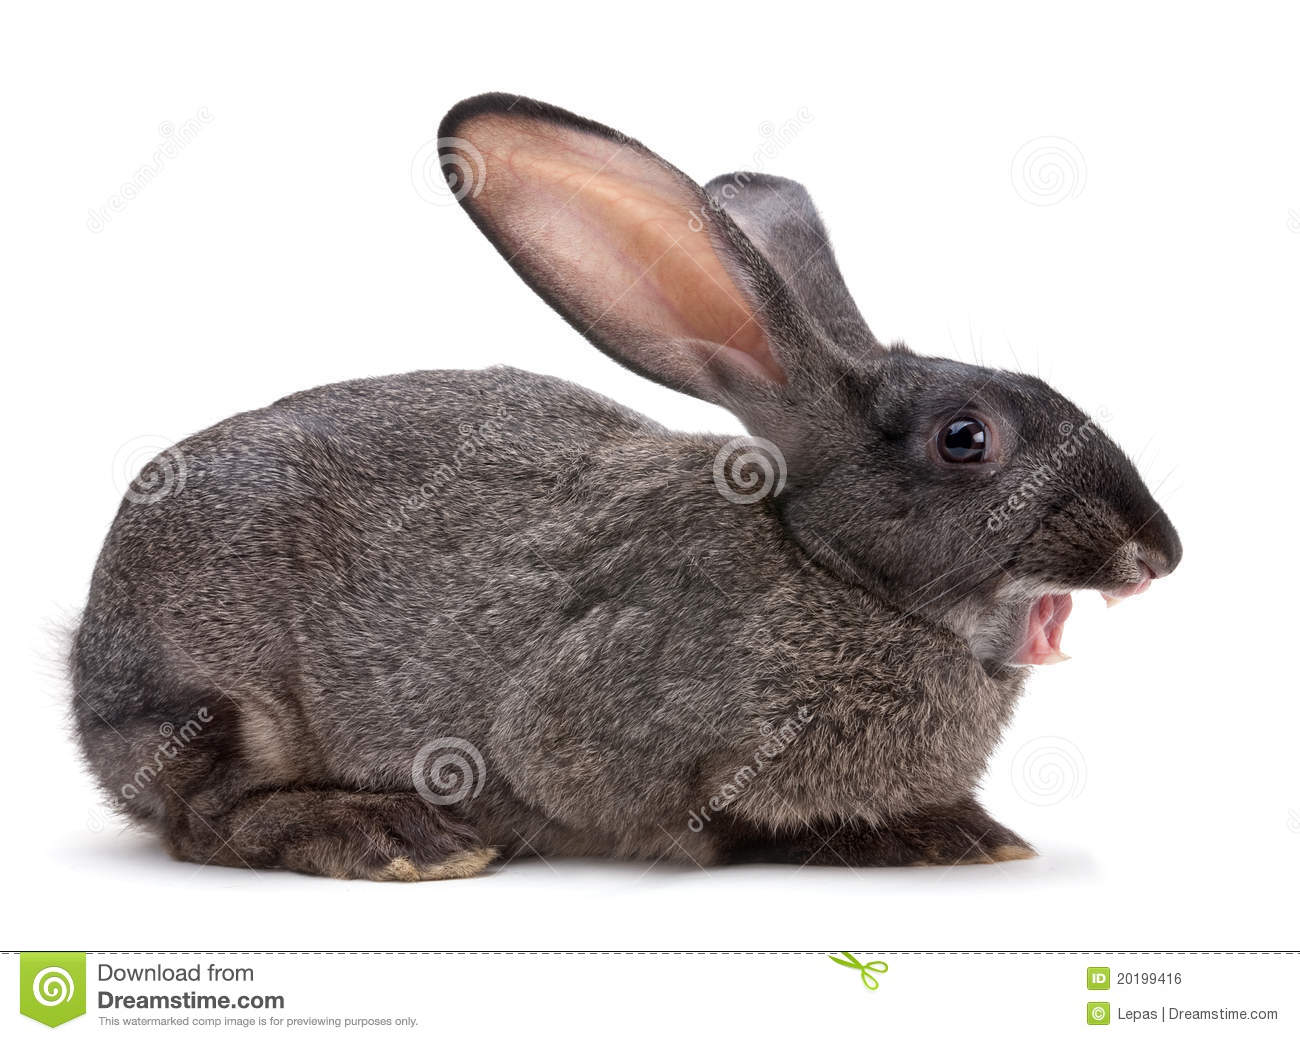 Rabbit Farm Animal Royalty Free Stock Image - Image: 20199416